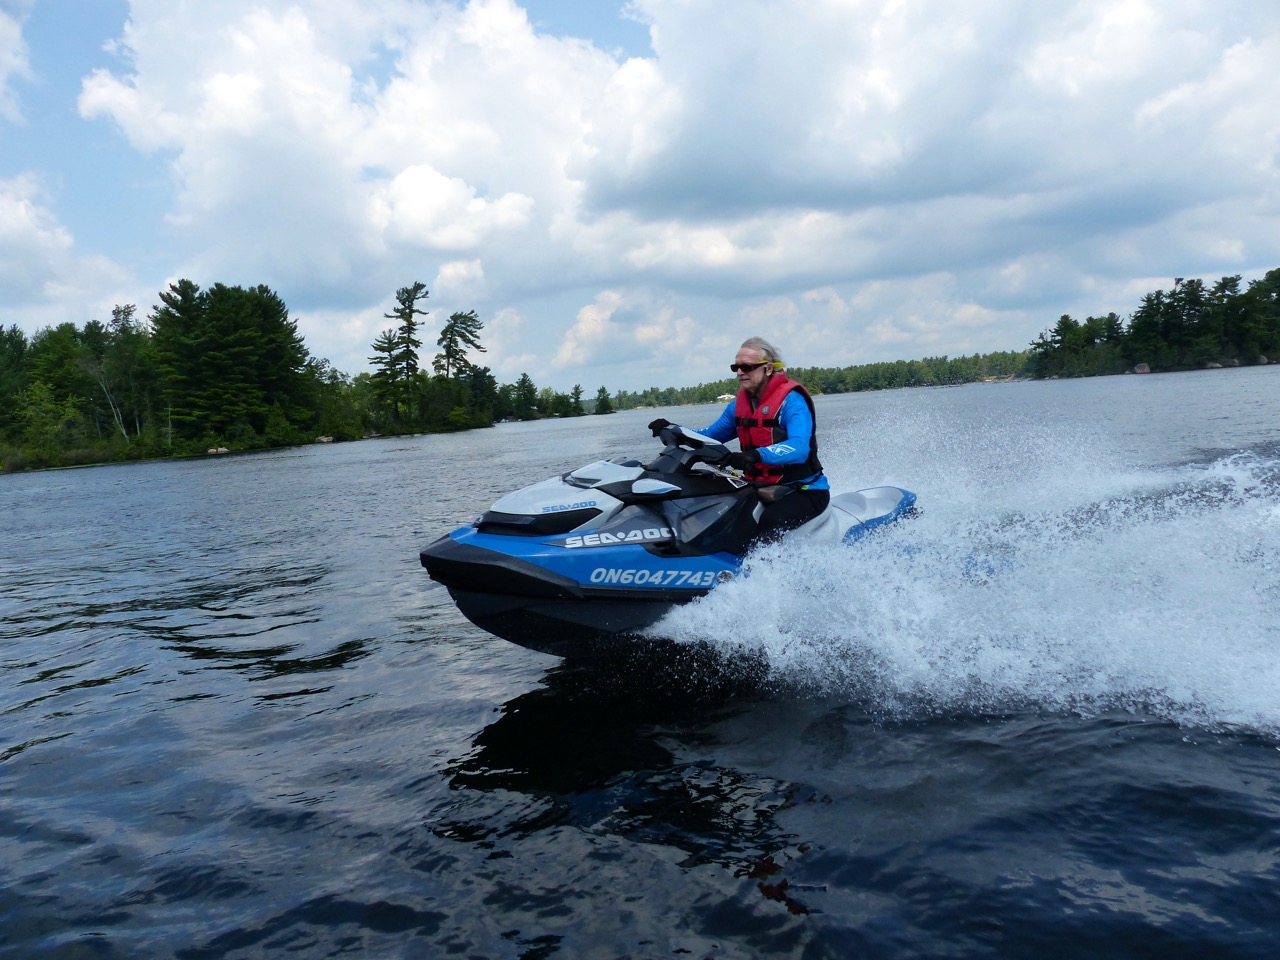 This is the new Sea Doo platform